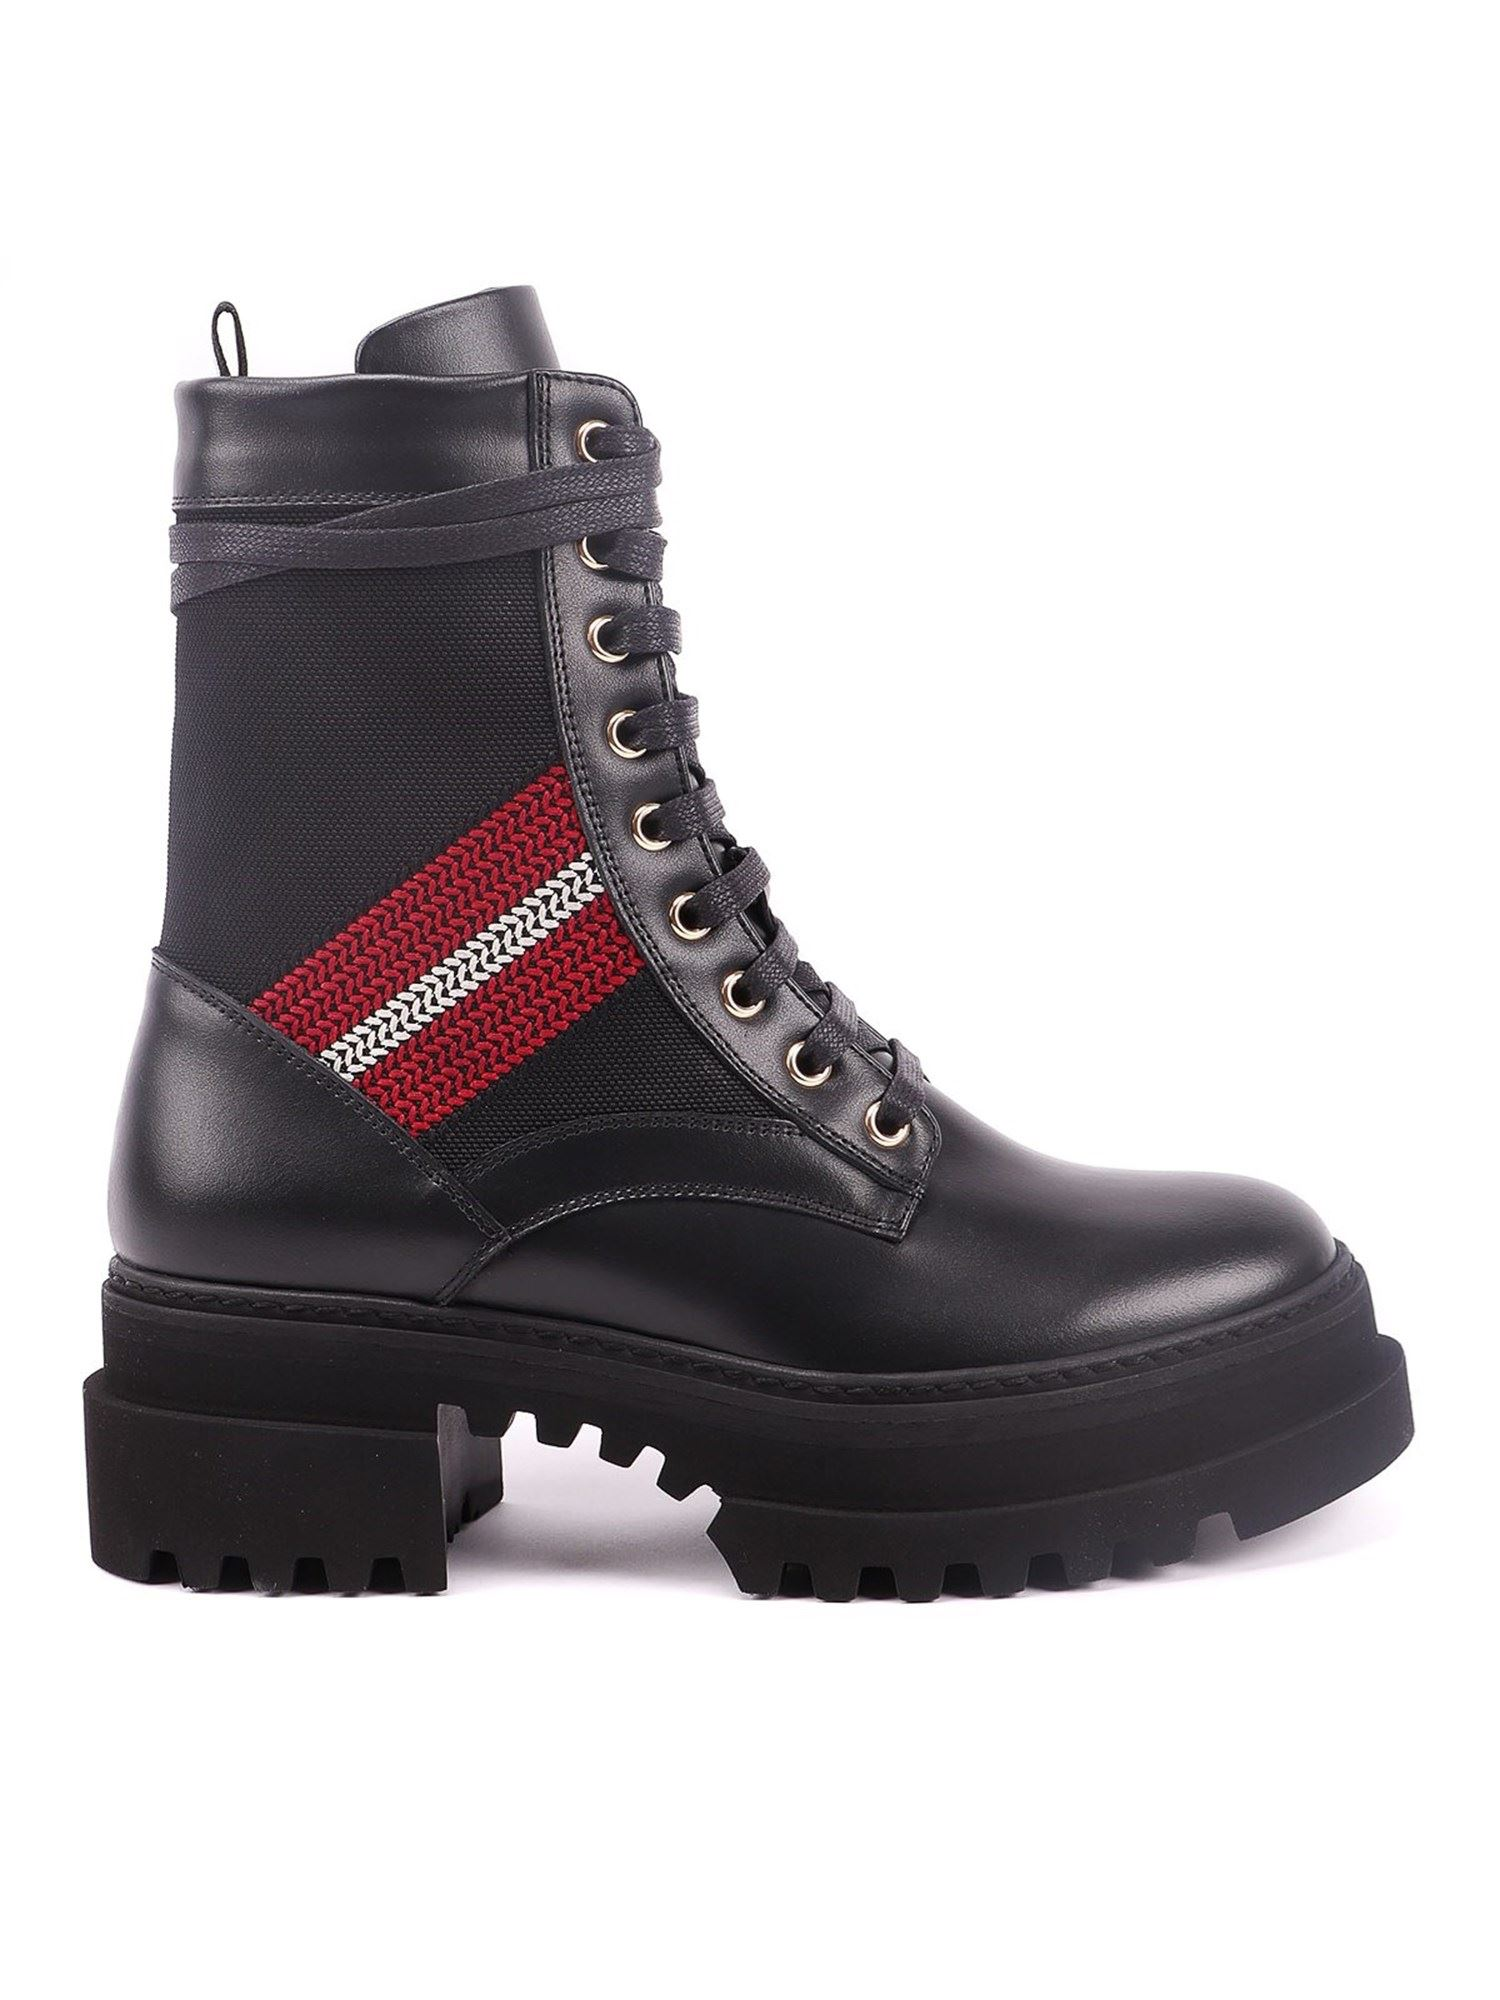 BALLY BLACK GIOIS COMBAT BOOTS